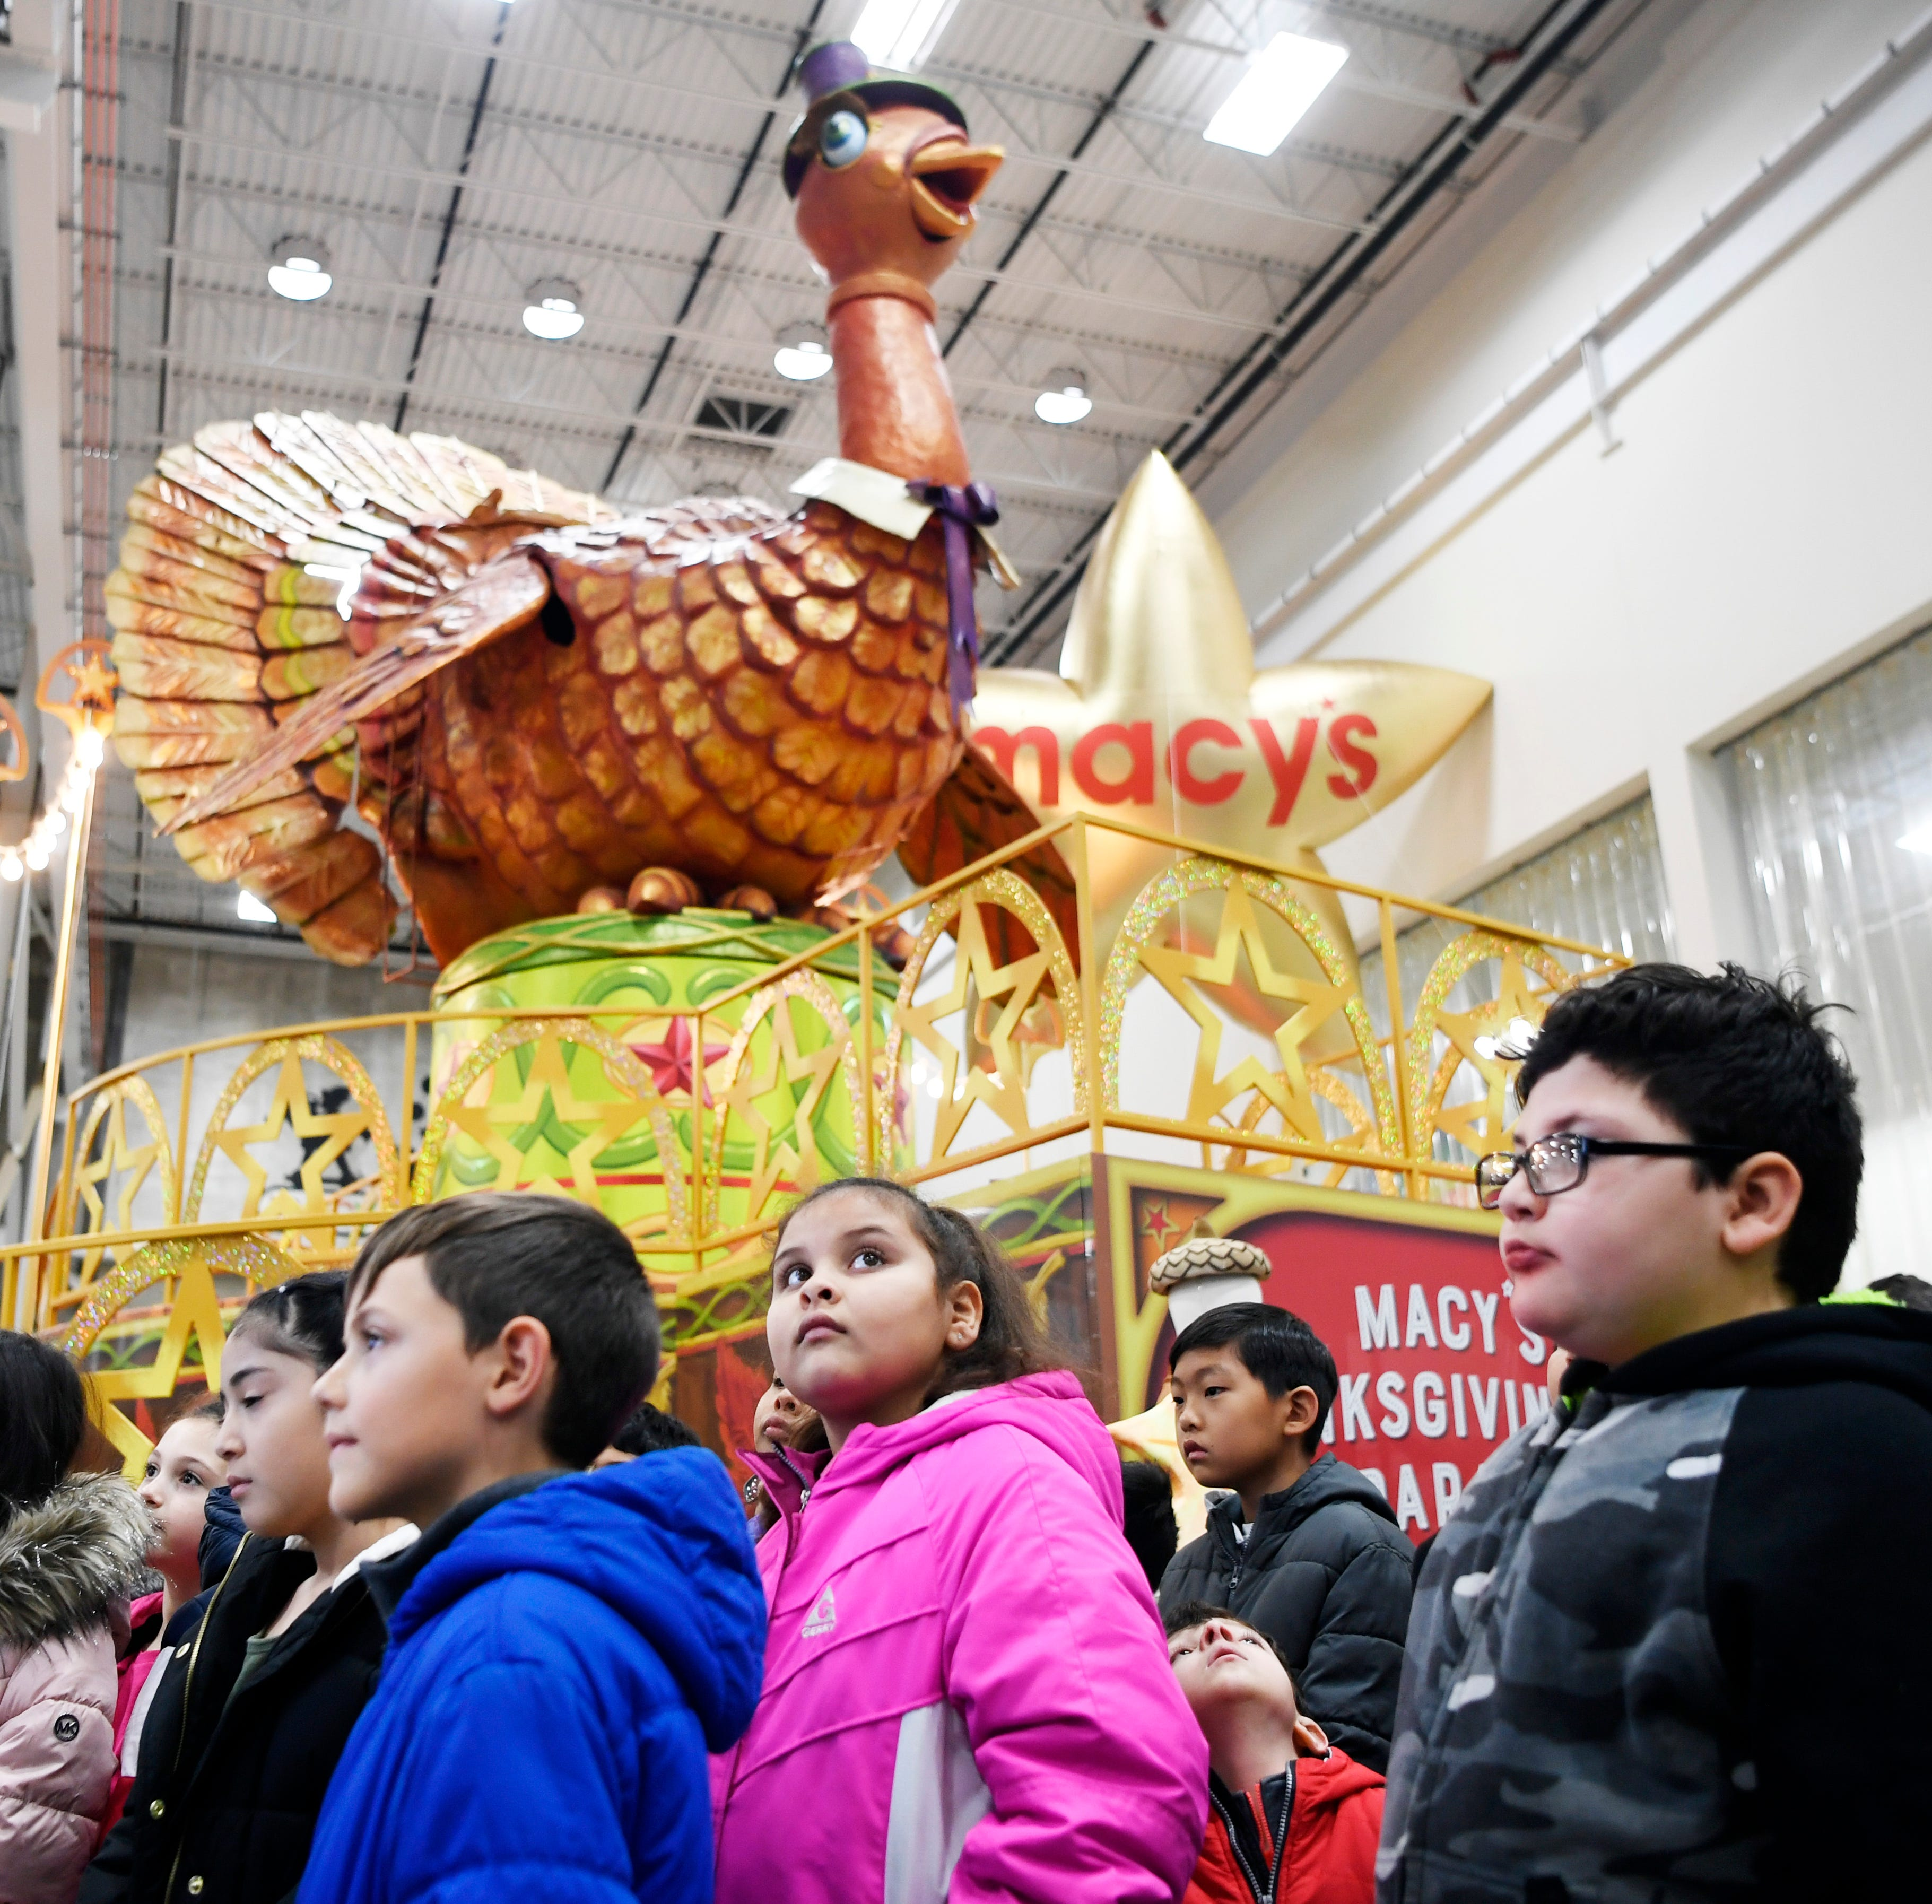 NJ students get behind-the-scenes tour of Macy's Thanksgiving Day Parade studio